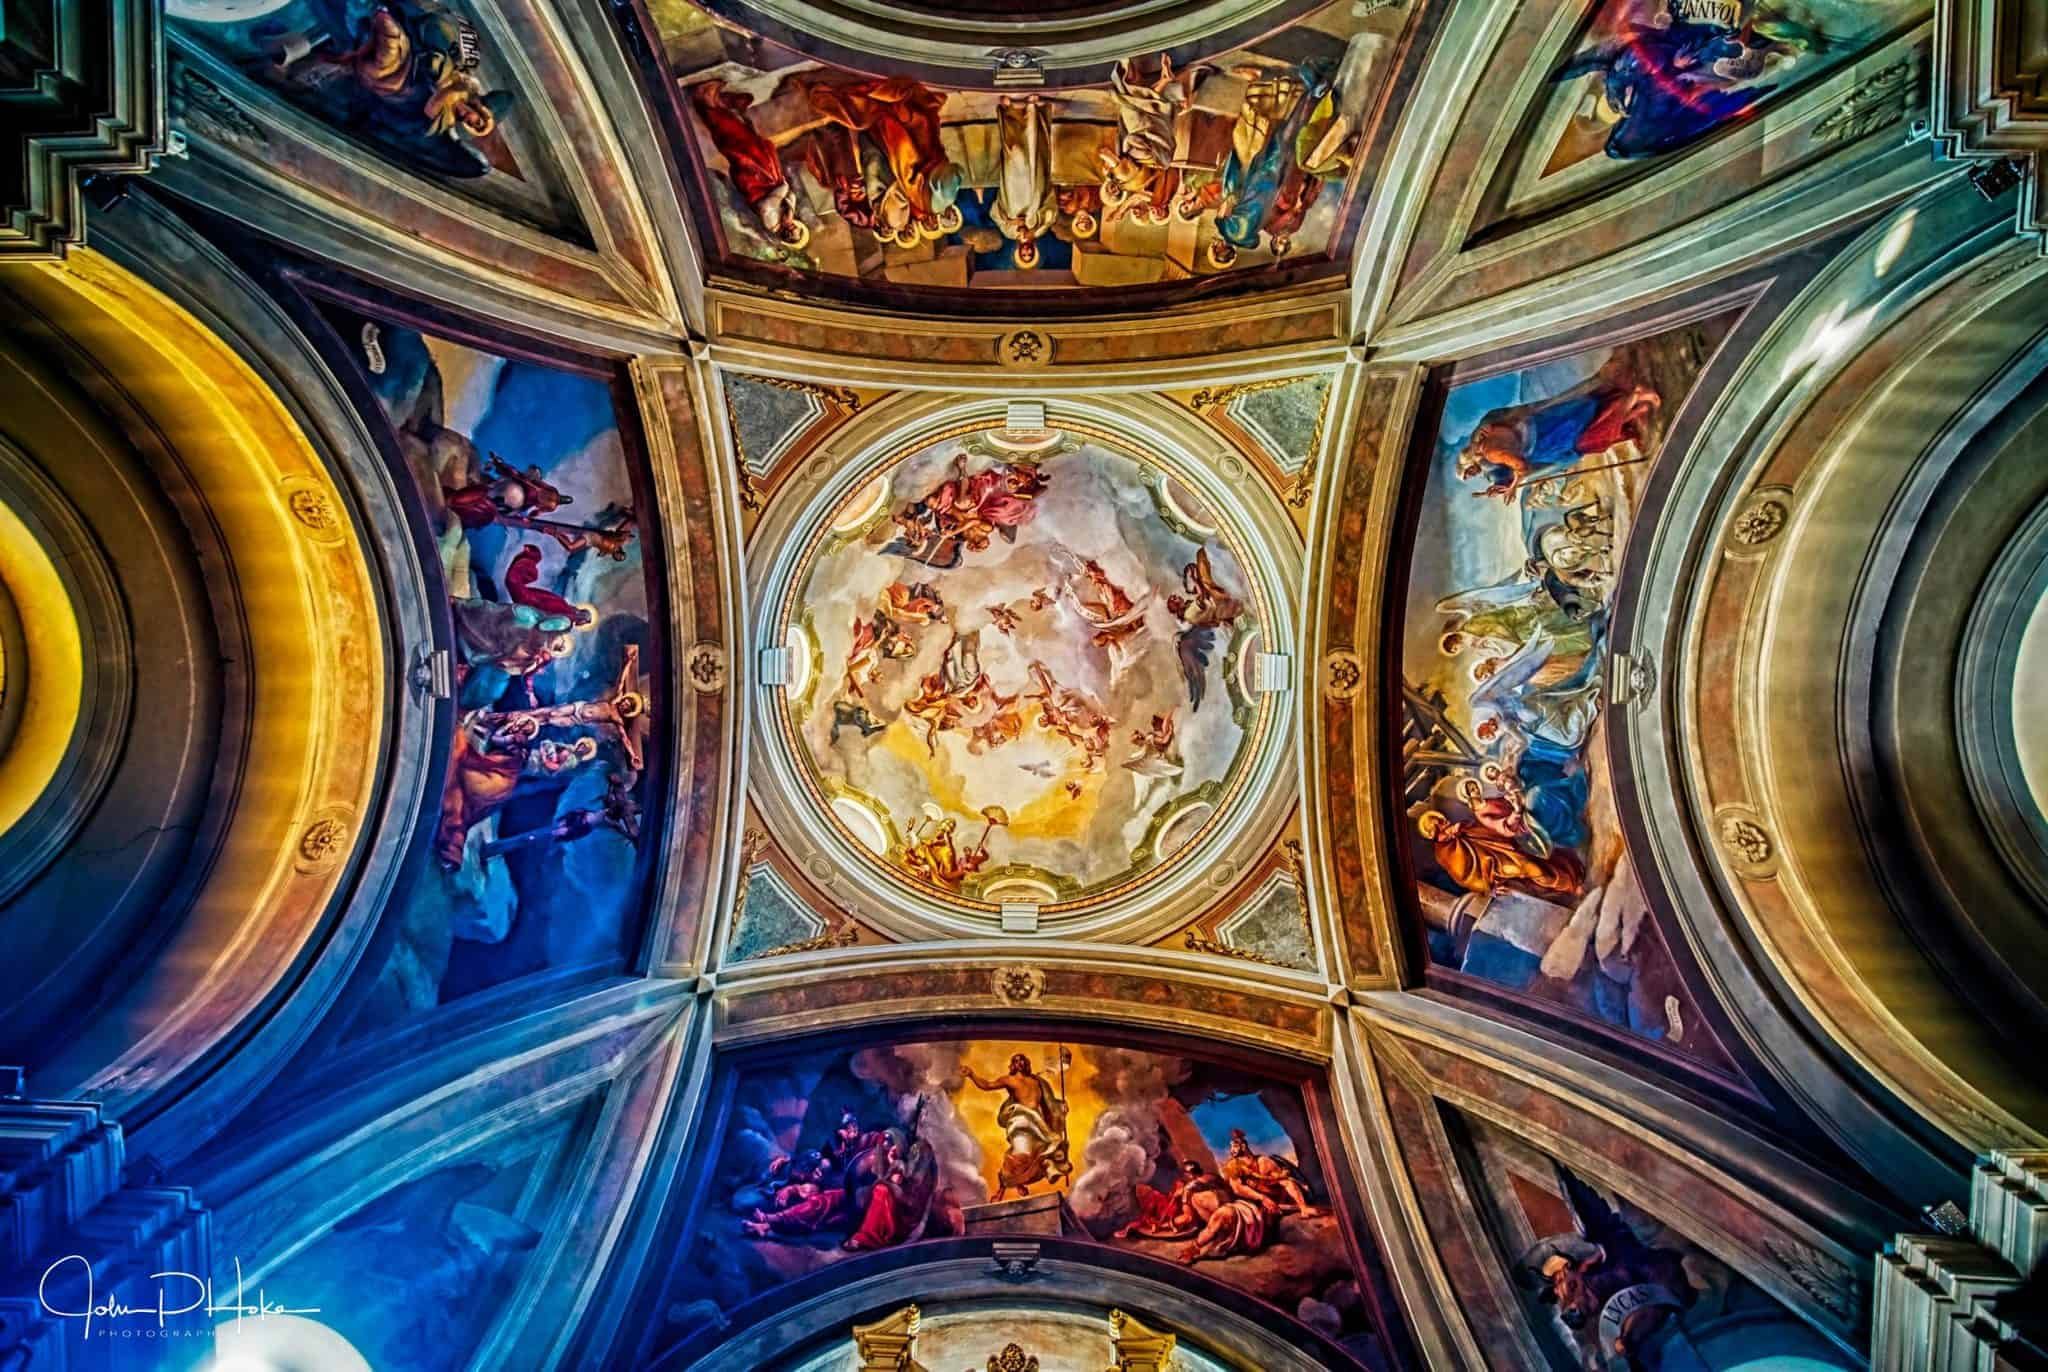 Ceiling Frescoes of Saint Andrew the Apostle